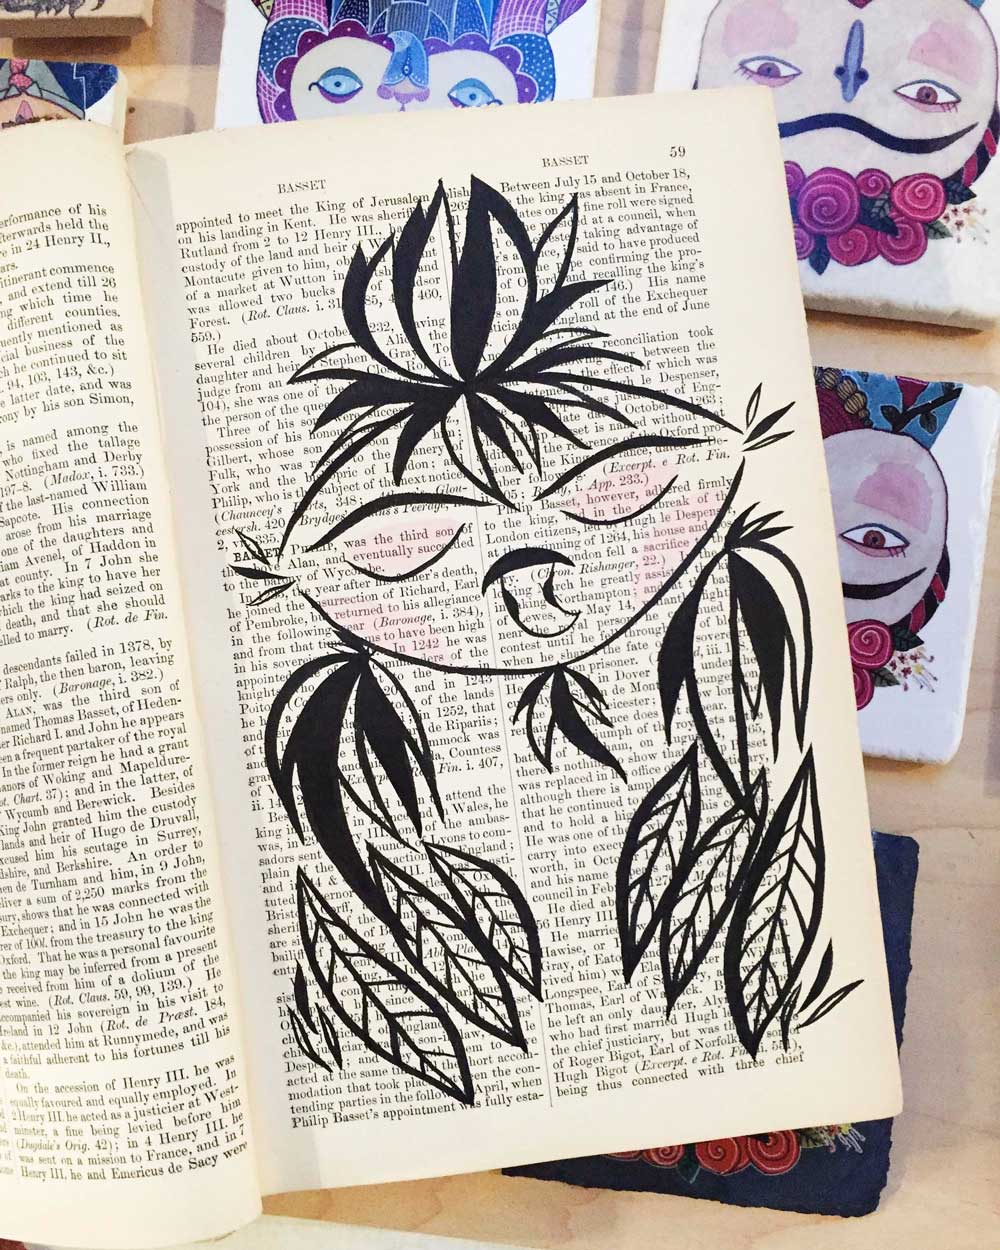 tats-book-page-painting-eve-devore-40.jpg